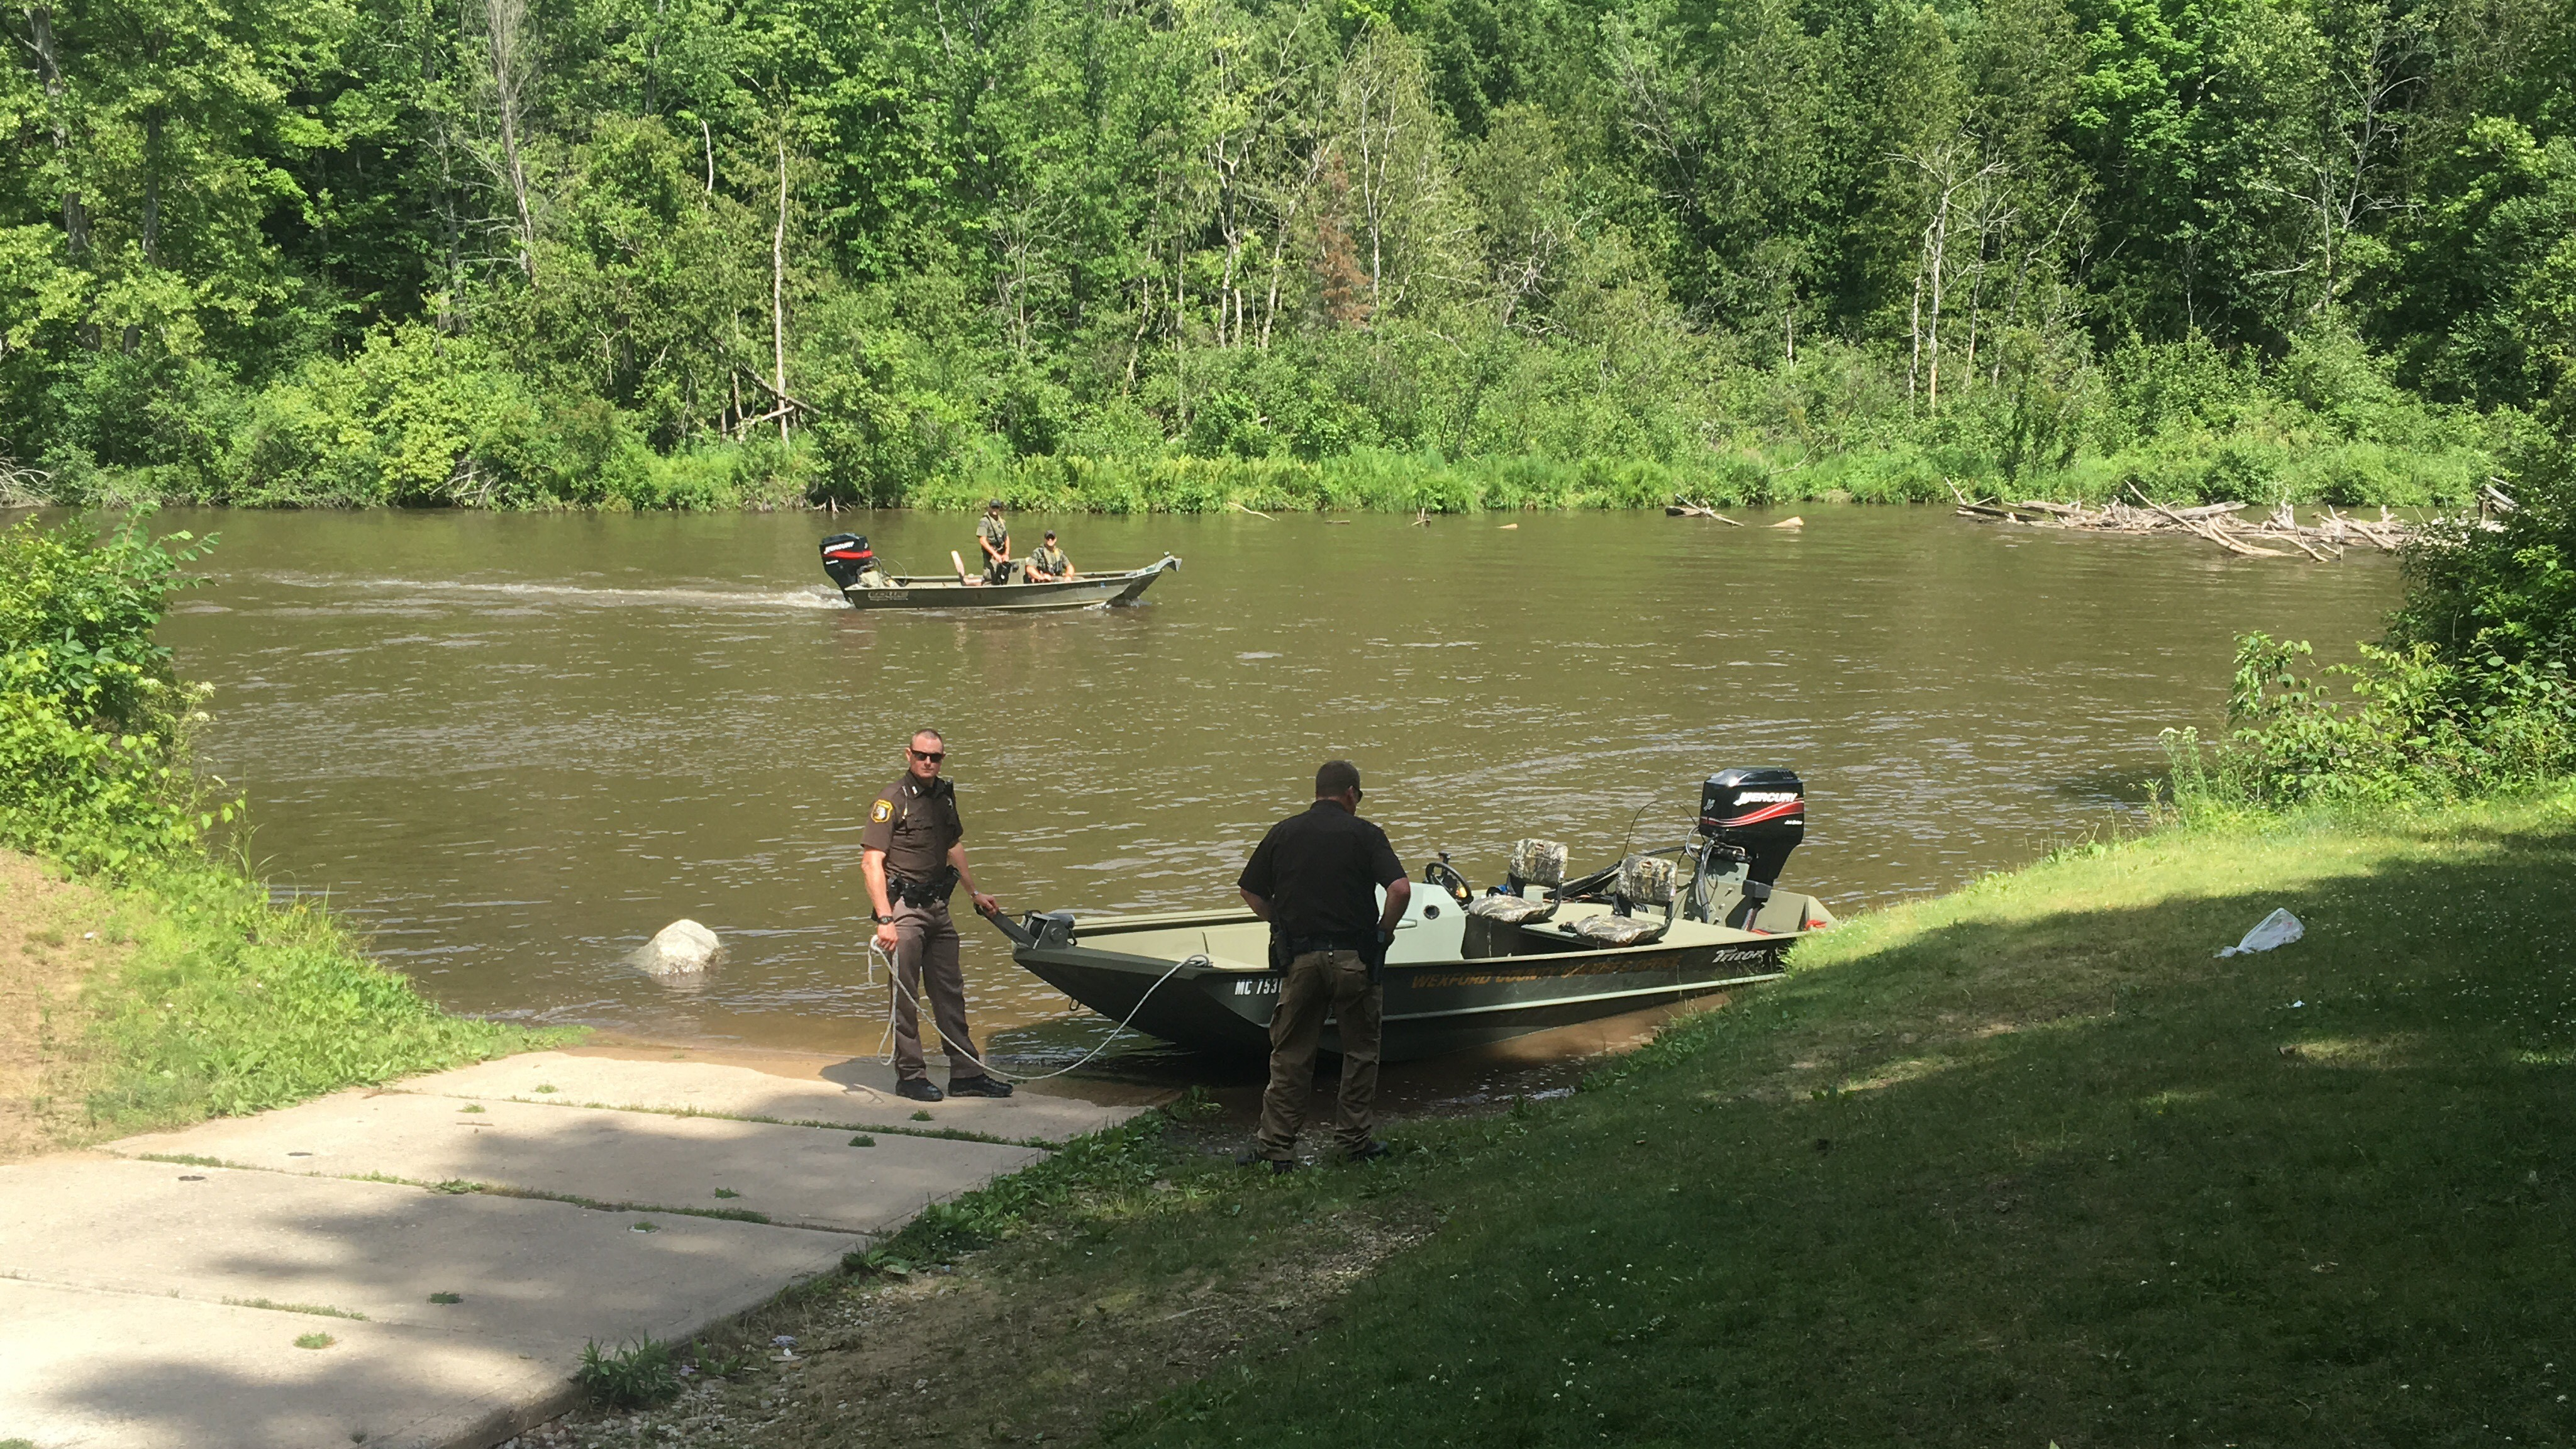 Cadillac Woman Drowns While Tubing on Manistee River - 9